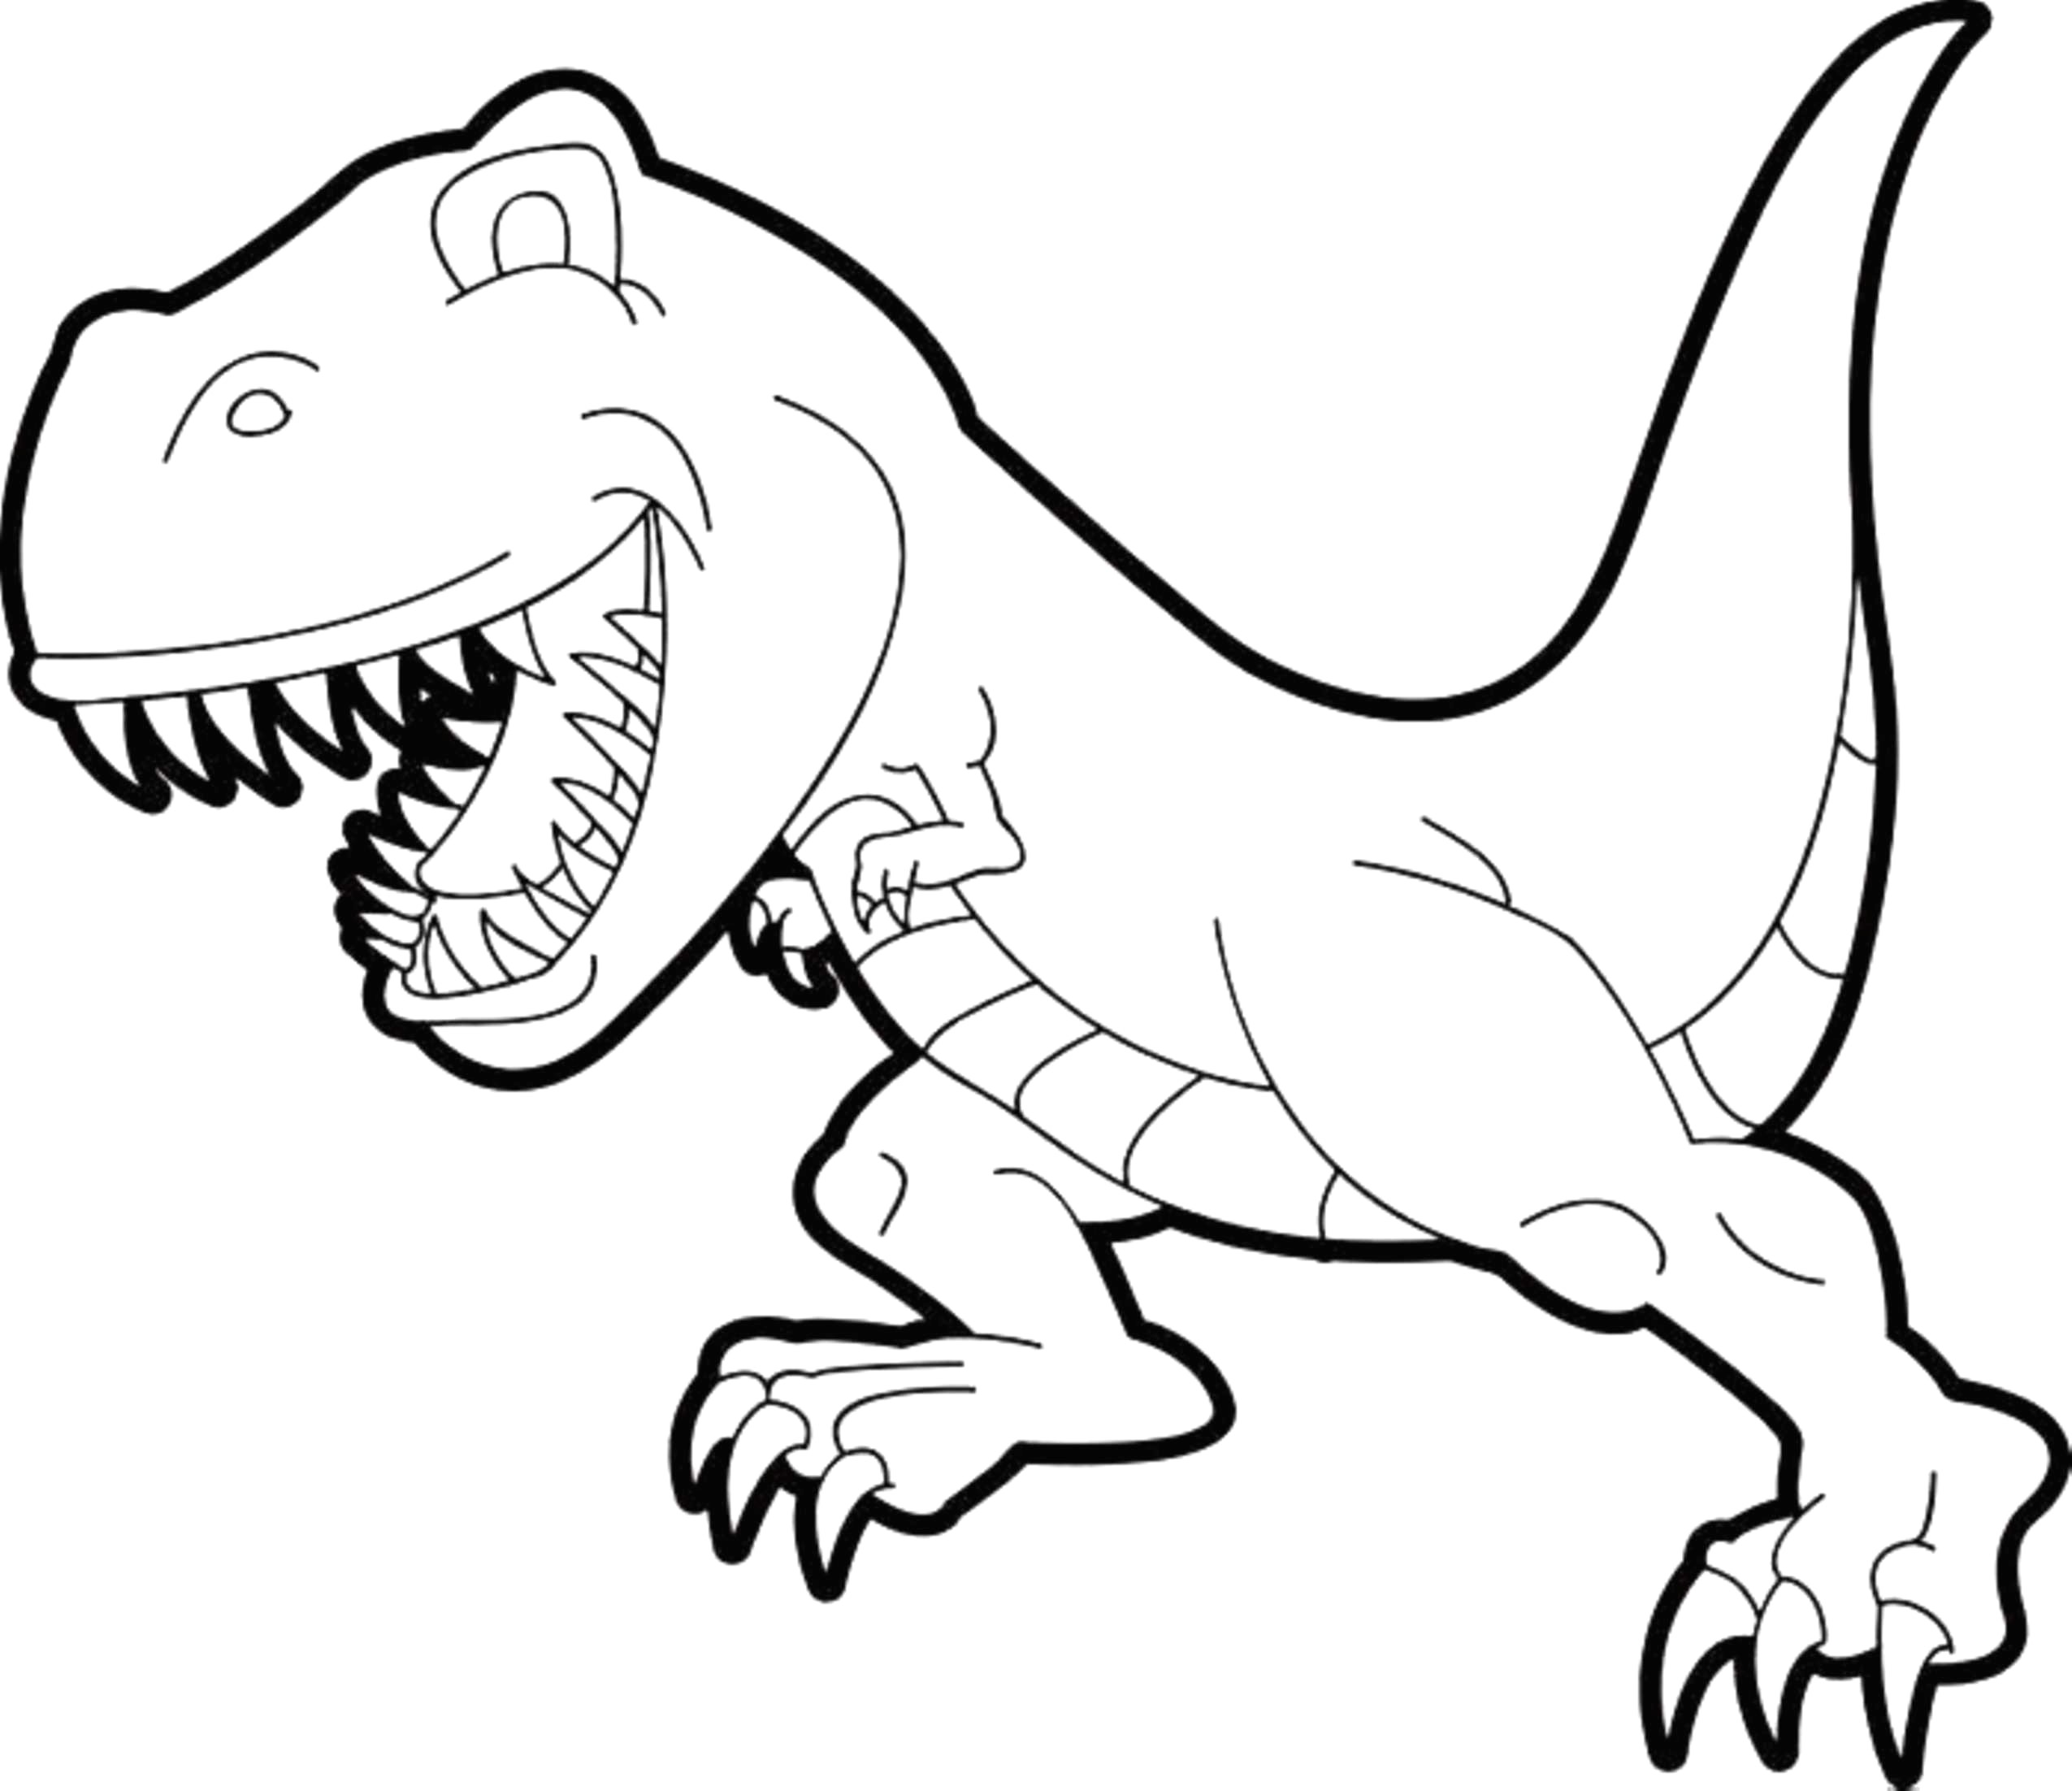 2550x2204 T Rex Dinosaur Coloring Pages For Kids Lovely Triceratops Clipart